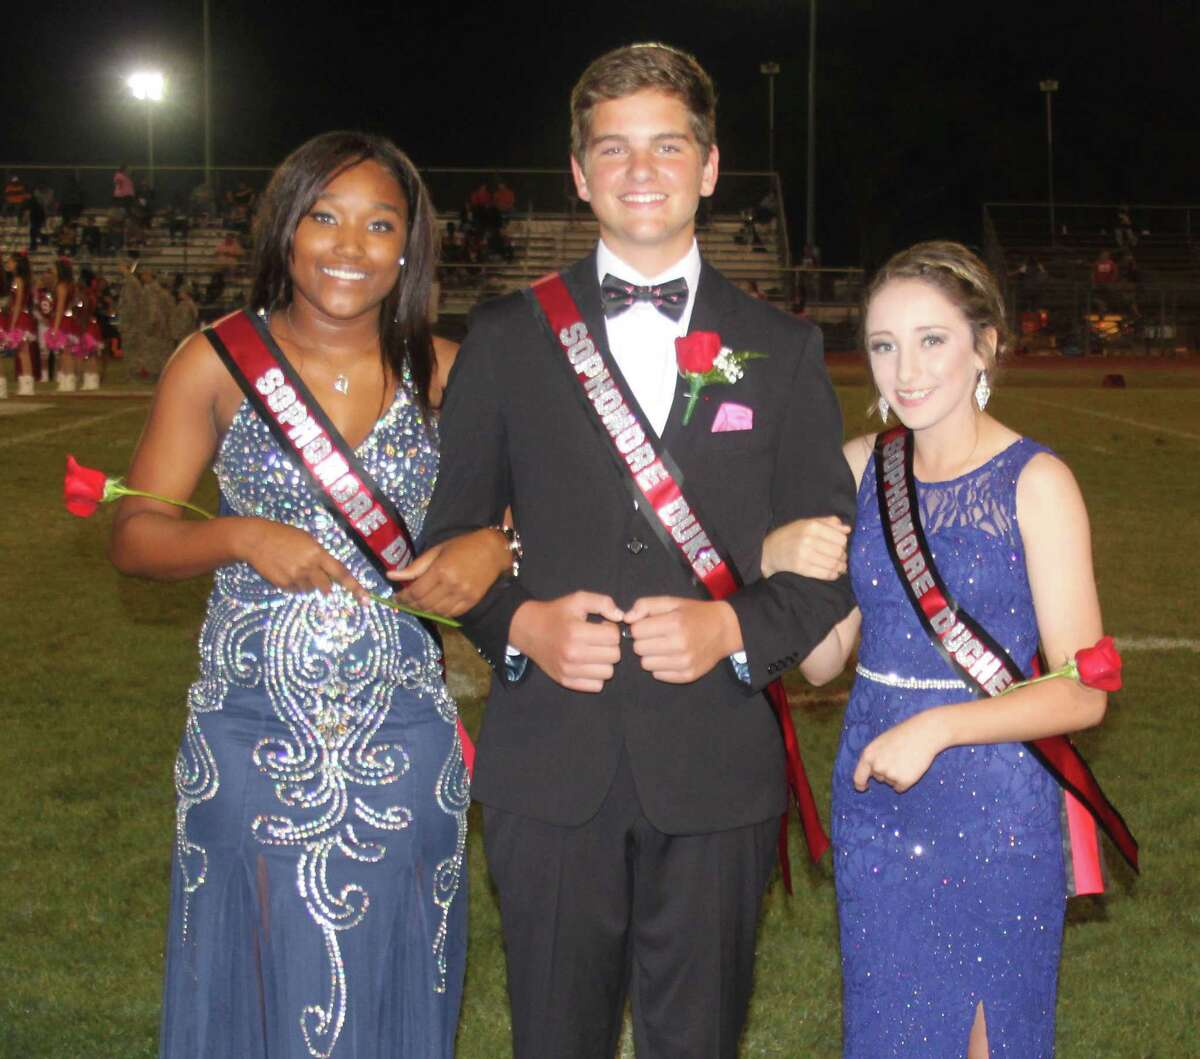 Coldspring-Oakhurst High School Sophomore Duke Brendan Beard (middle) escorts Duchesses Rylee Rudloff (right) and Acheanna Norman (left) during the Trojanhomecoming game on Oct. 14 against the Trinity Tigers.